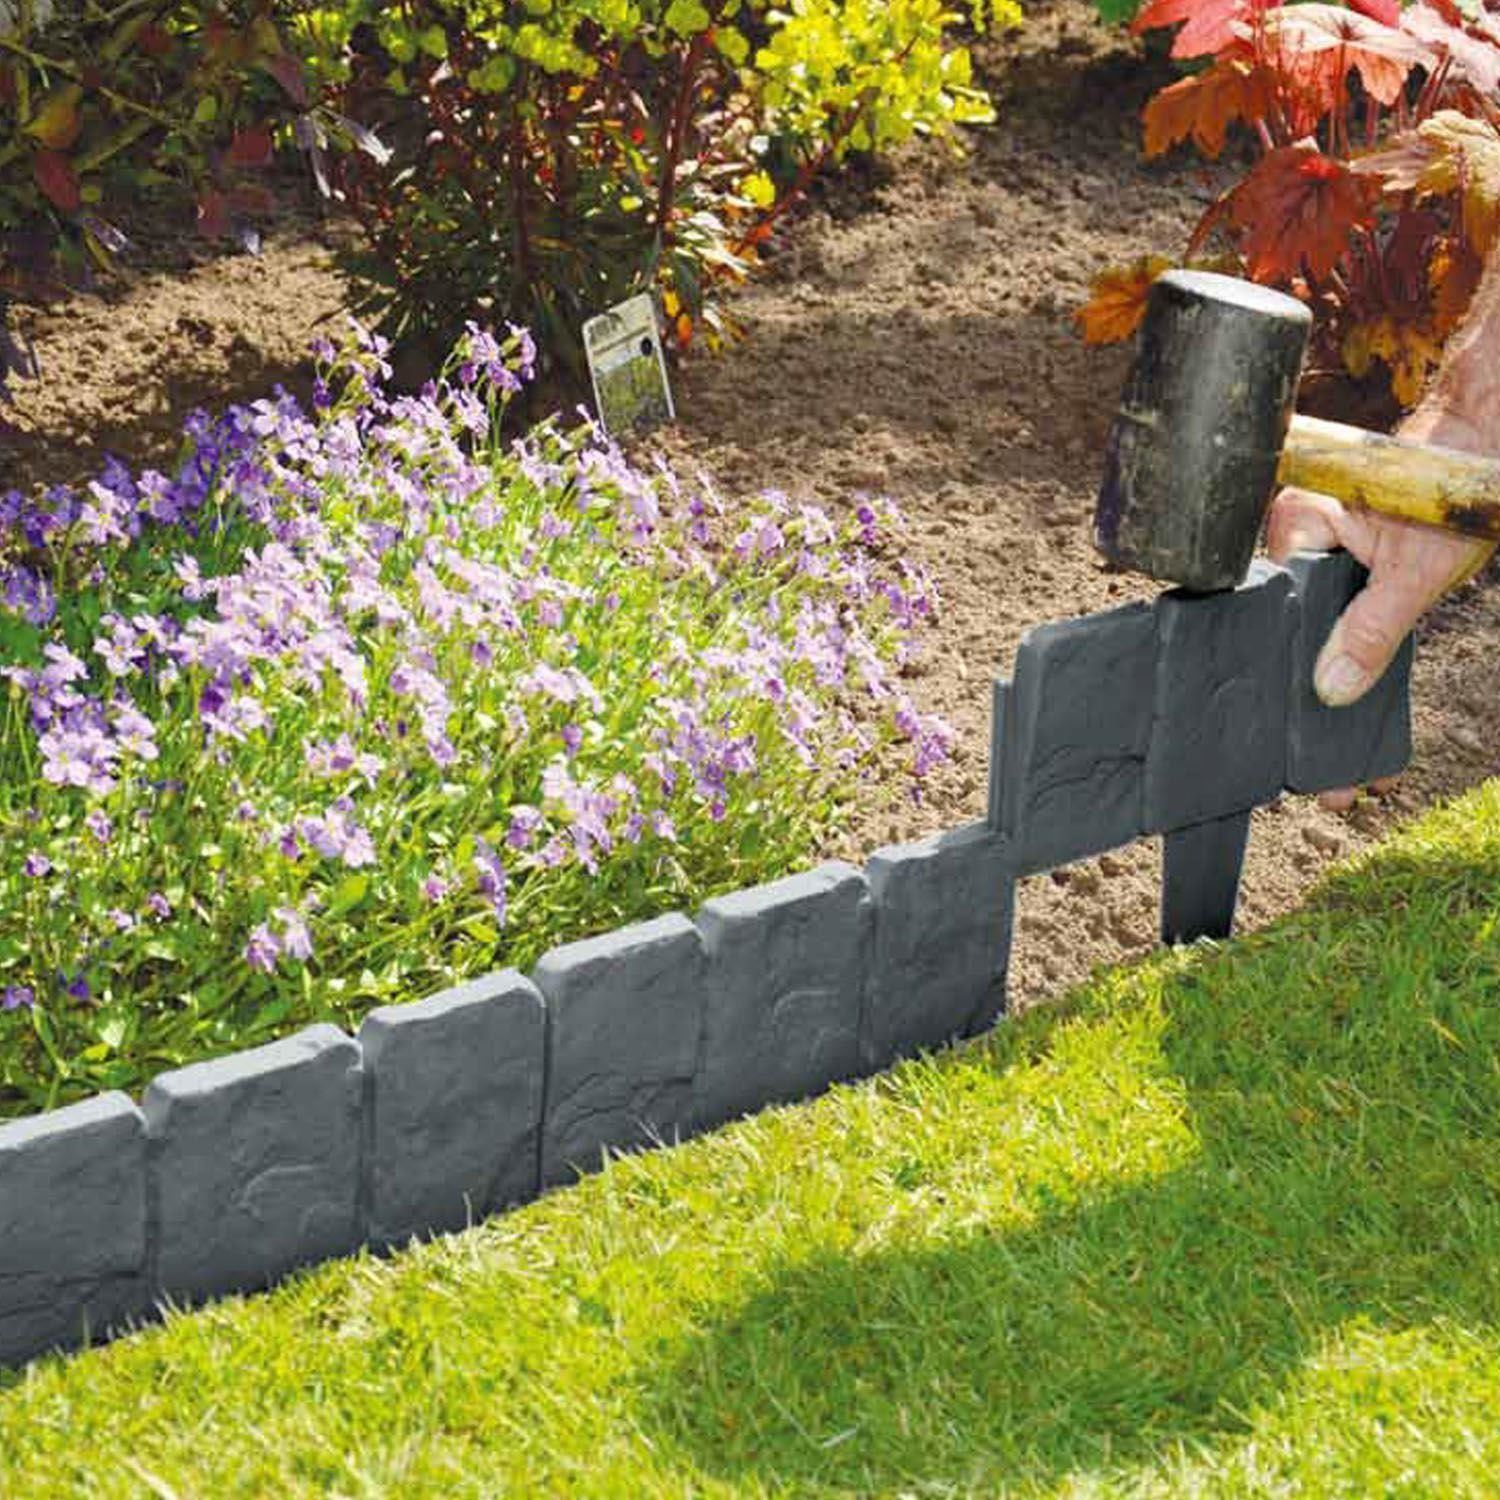 20 Pack Lawn Edging Cobbled Stone Effect Garden Plants Tree Edging